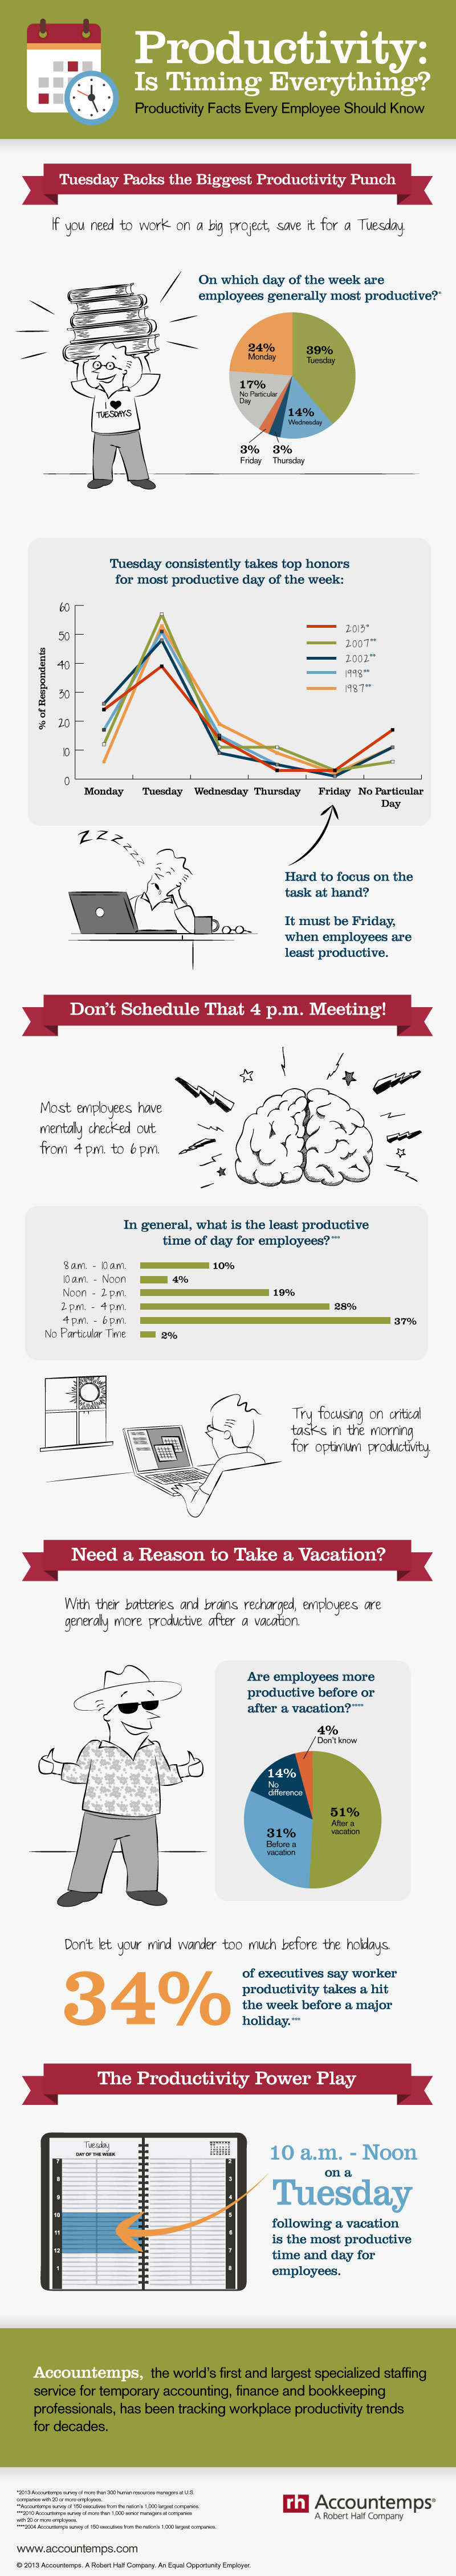 Productivity Business Infographic Work Infographic Infographic Marketing